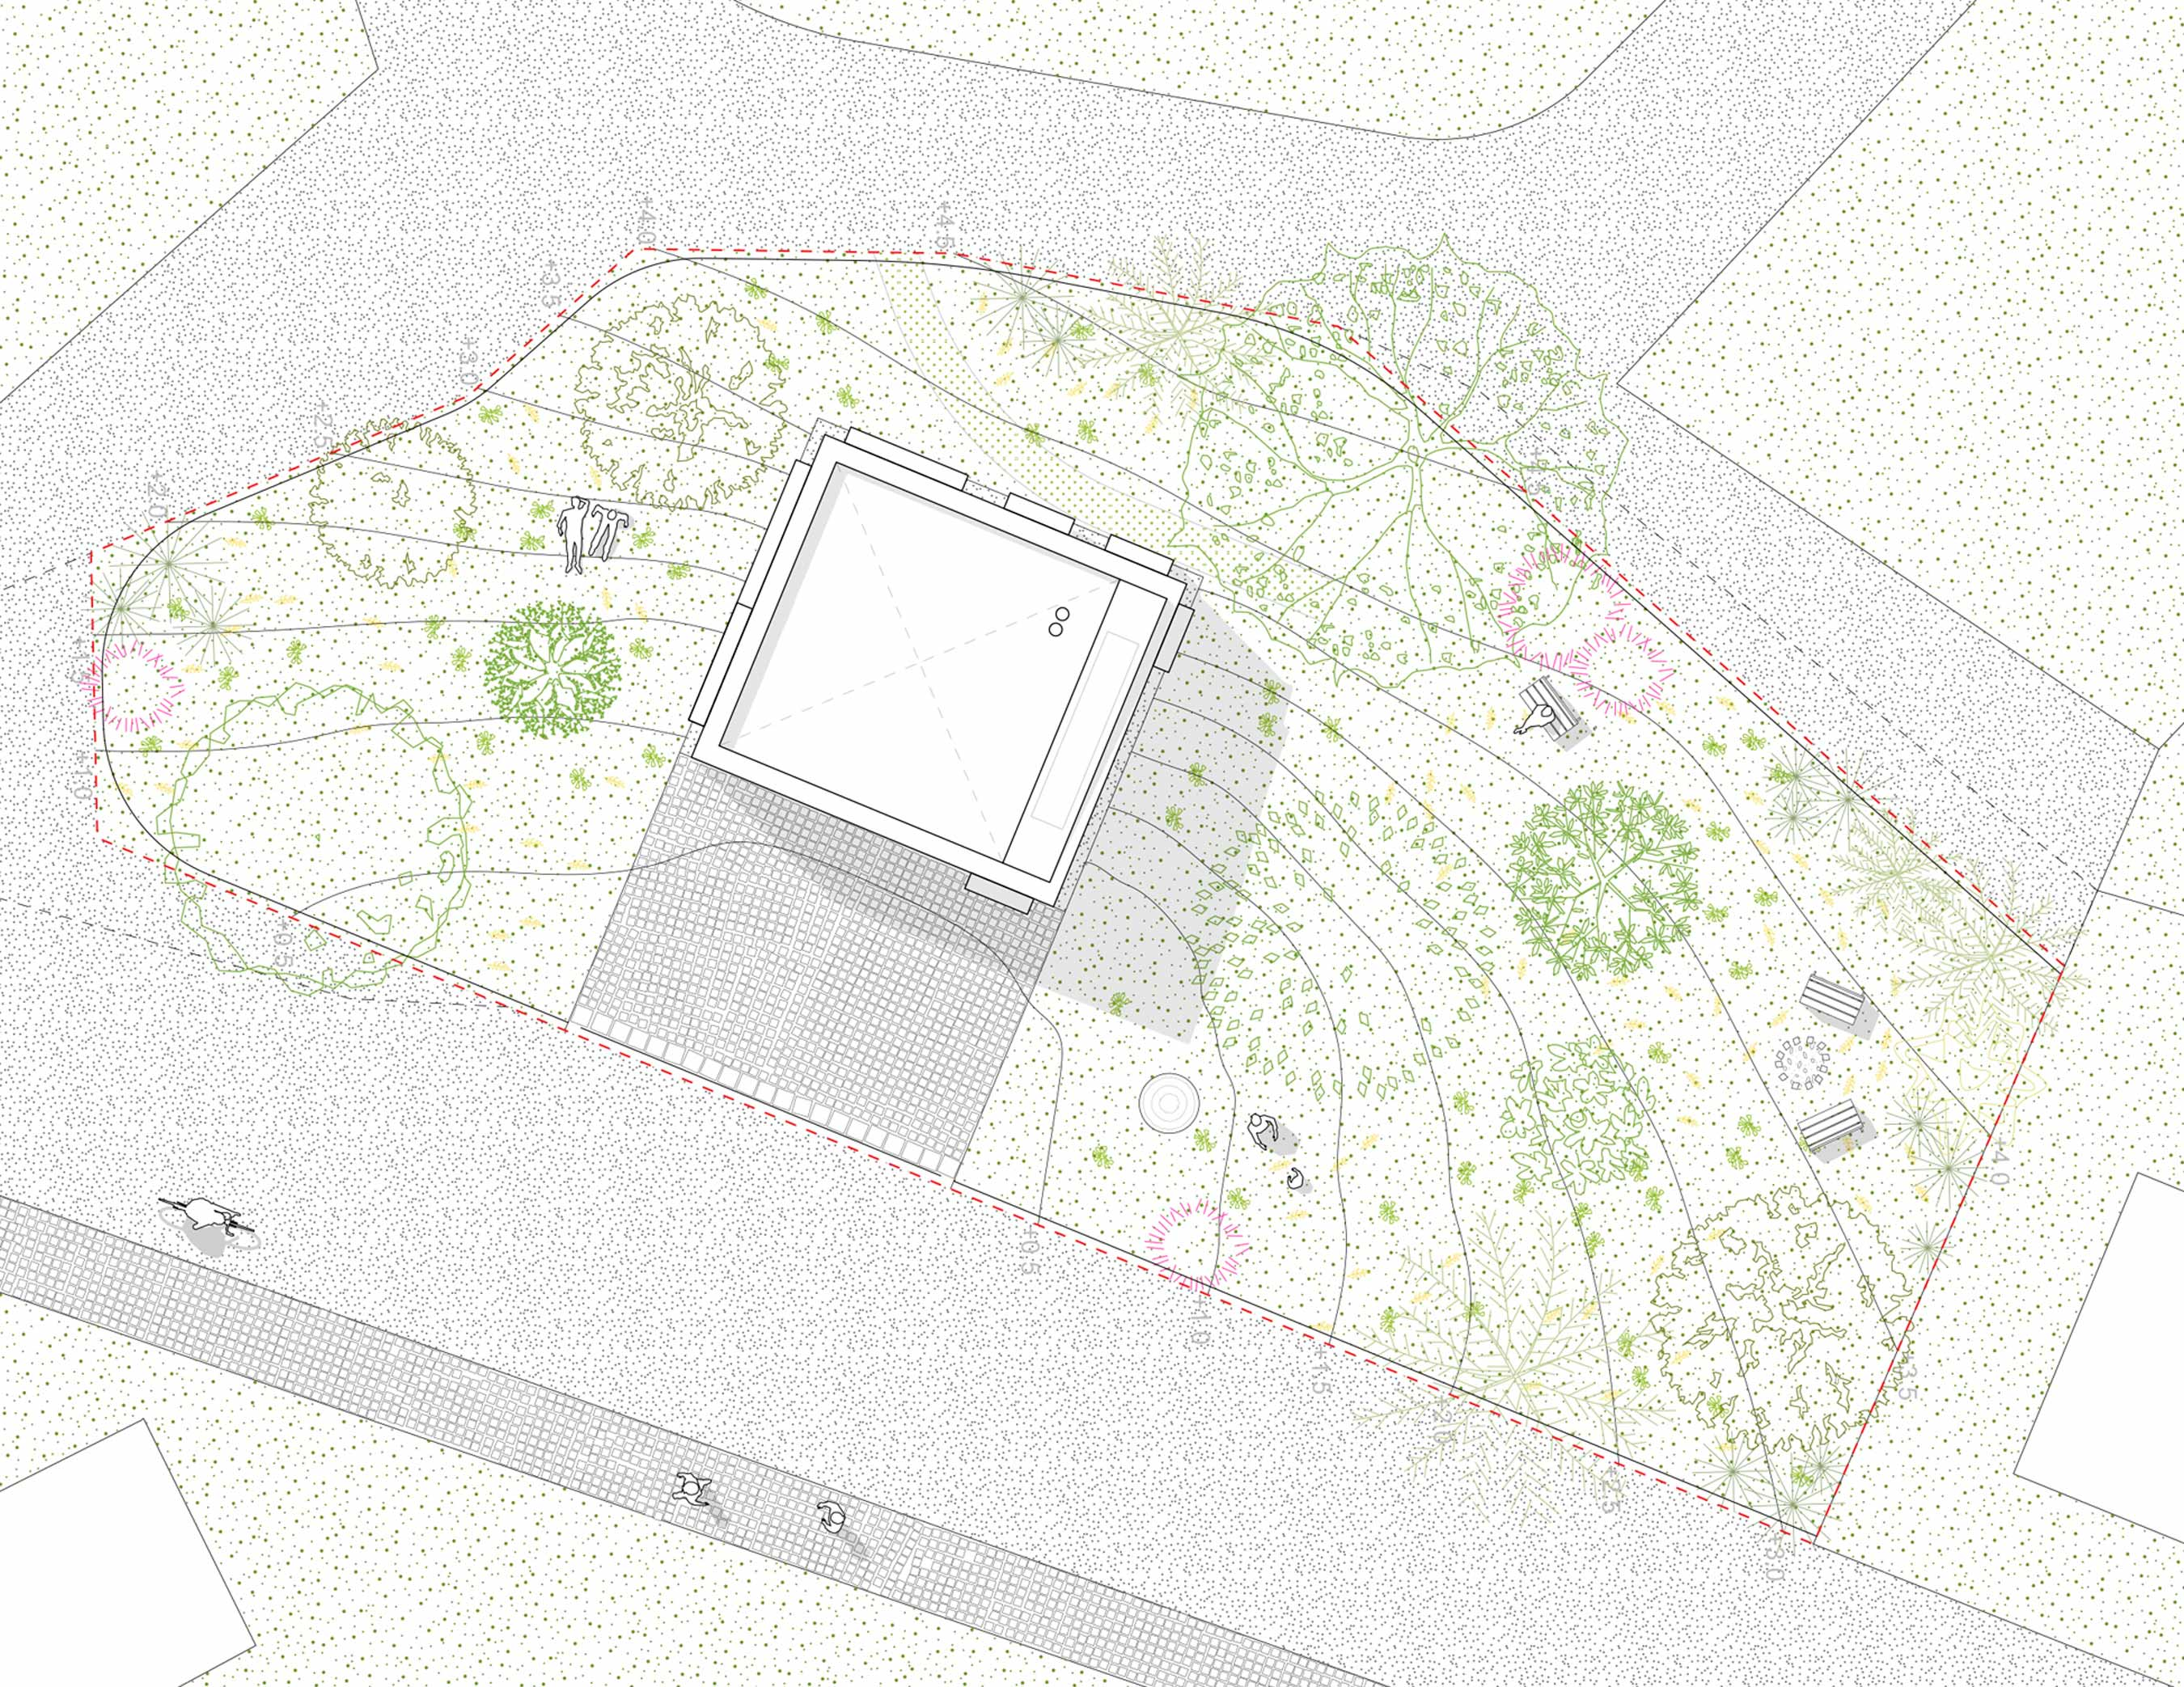 The Brick House - Site Plan